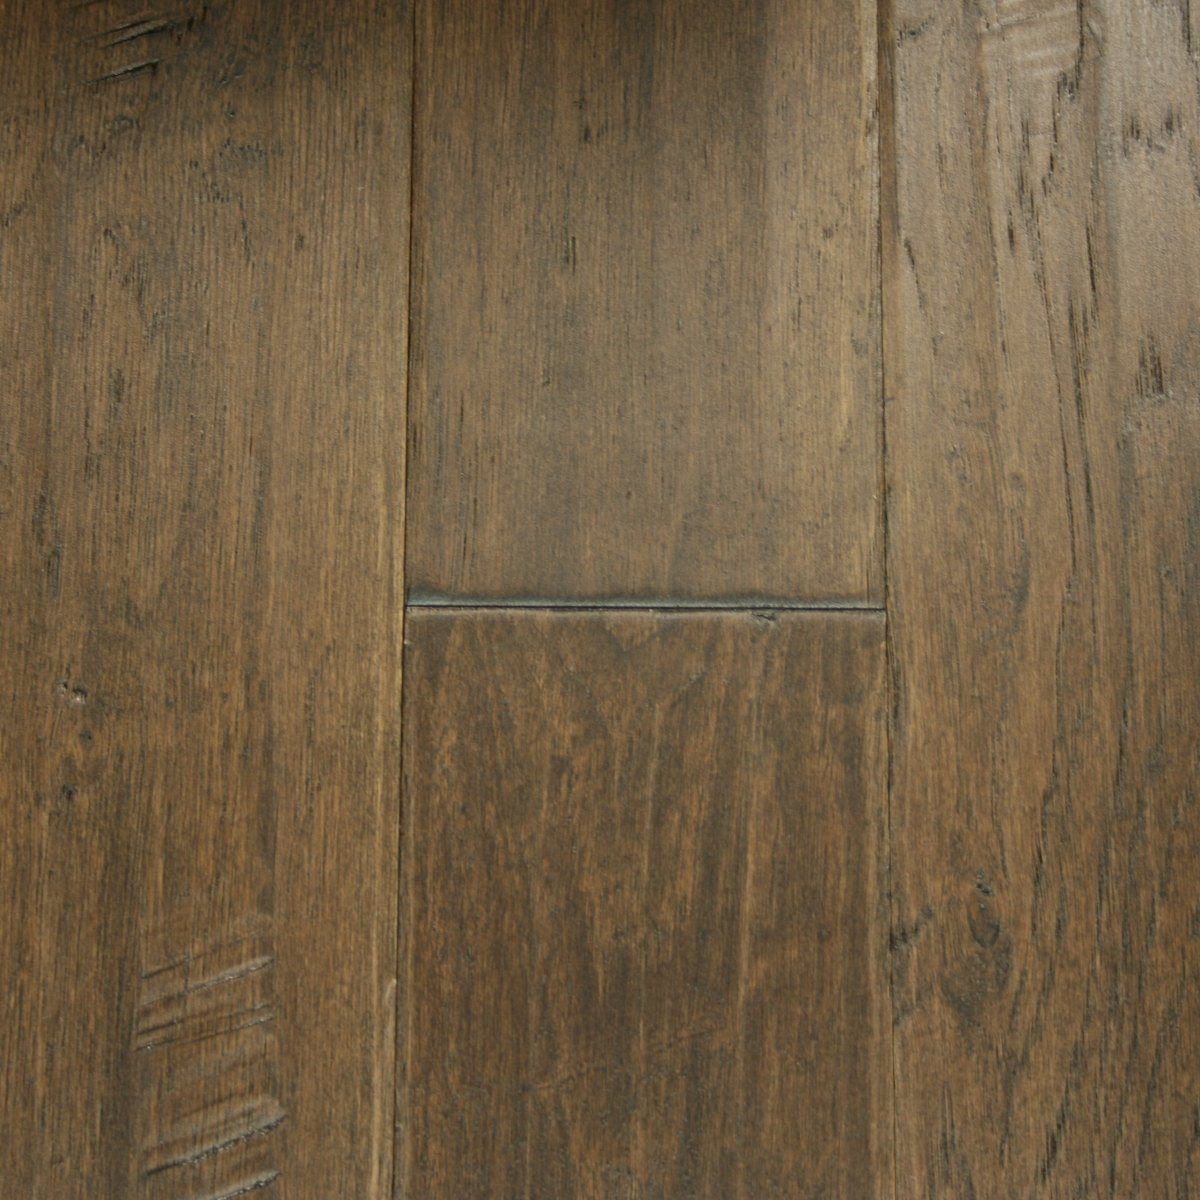 concrete click can full floating prices on nailed hardw schreiber over of hardwood engineered floor installa best flooring construction carpet wood down vs solid details size manufacturers be